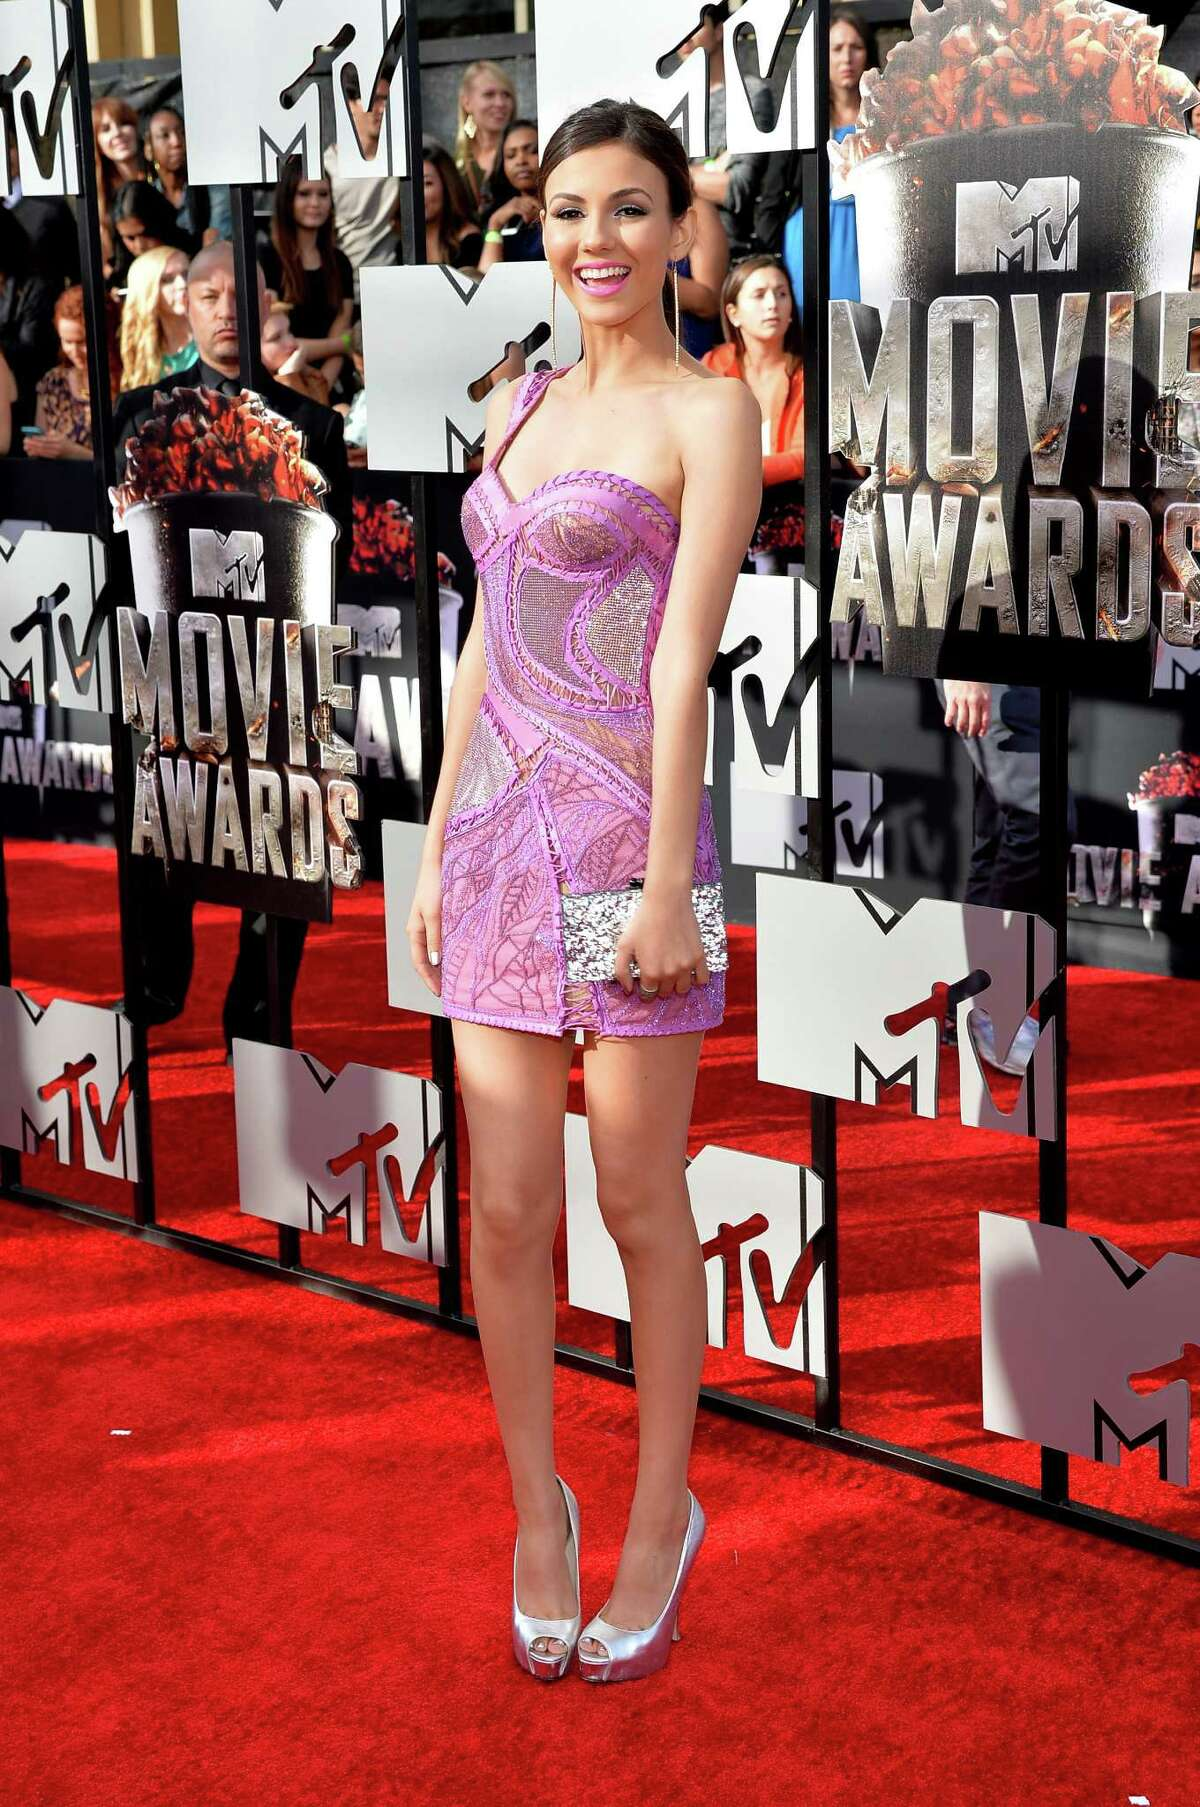 Actress Victoria Justice attends the 2014 MTV Movie Awards at Nokia Theatre L.A. Live on April 13, 2014 in Los Angeles, Calif.